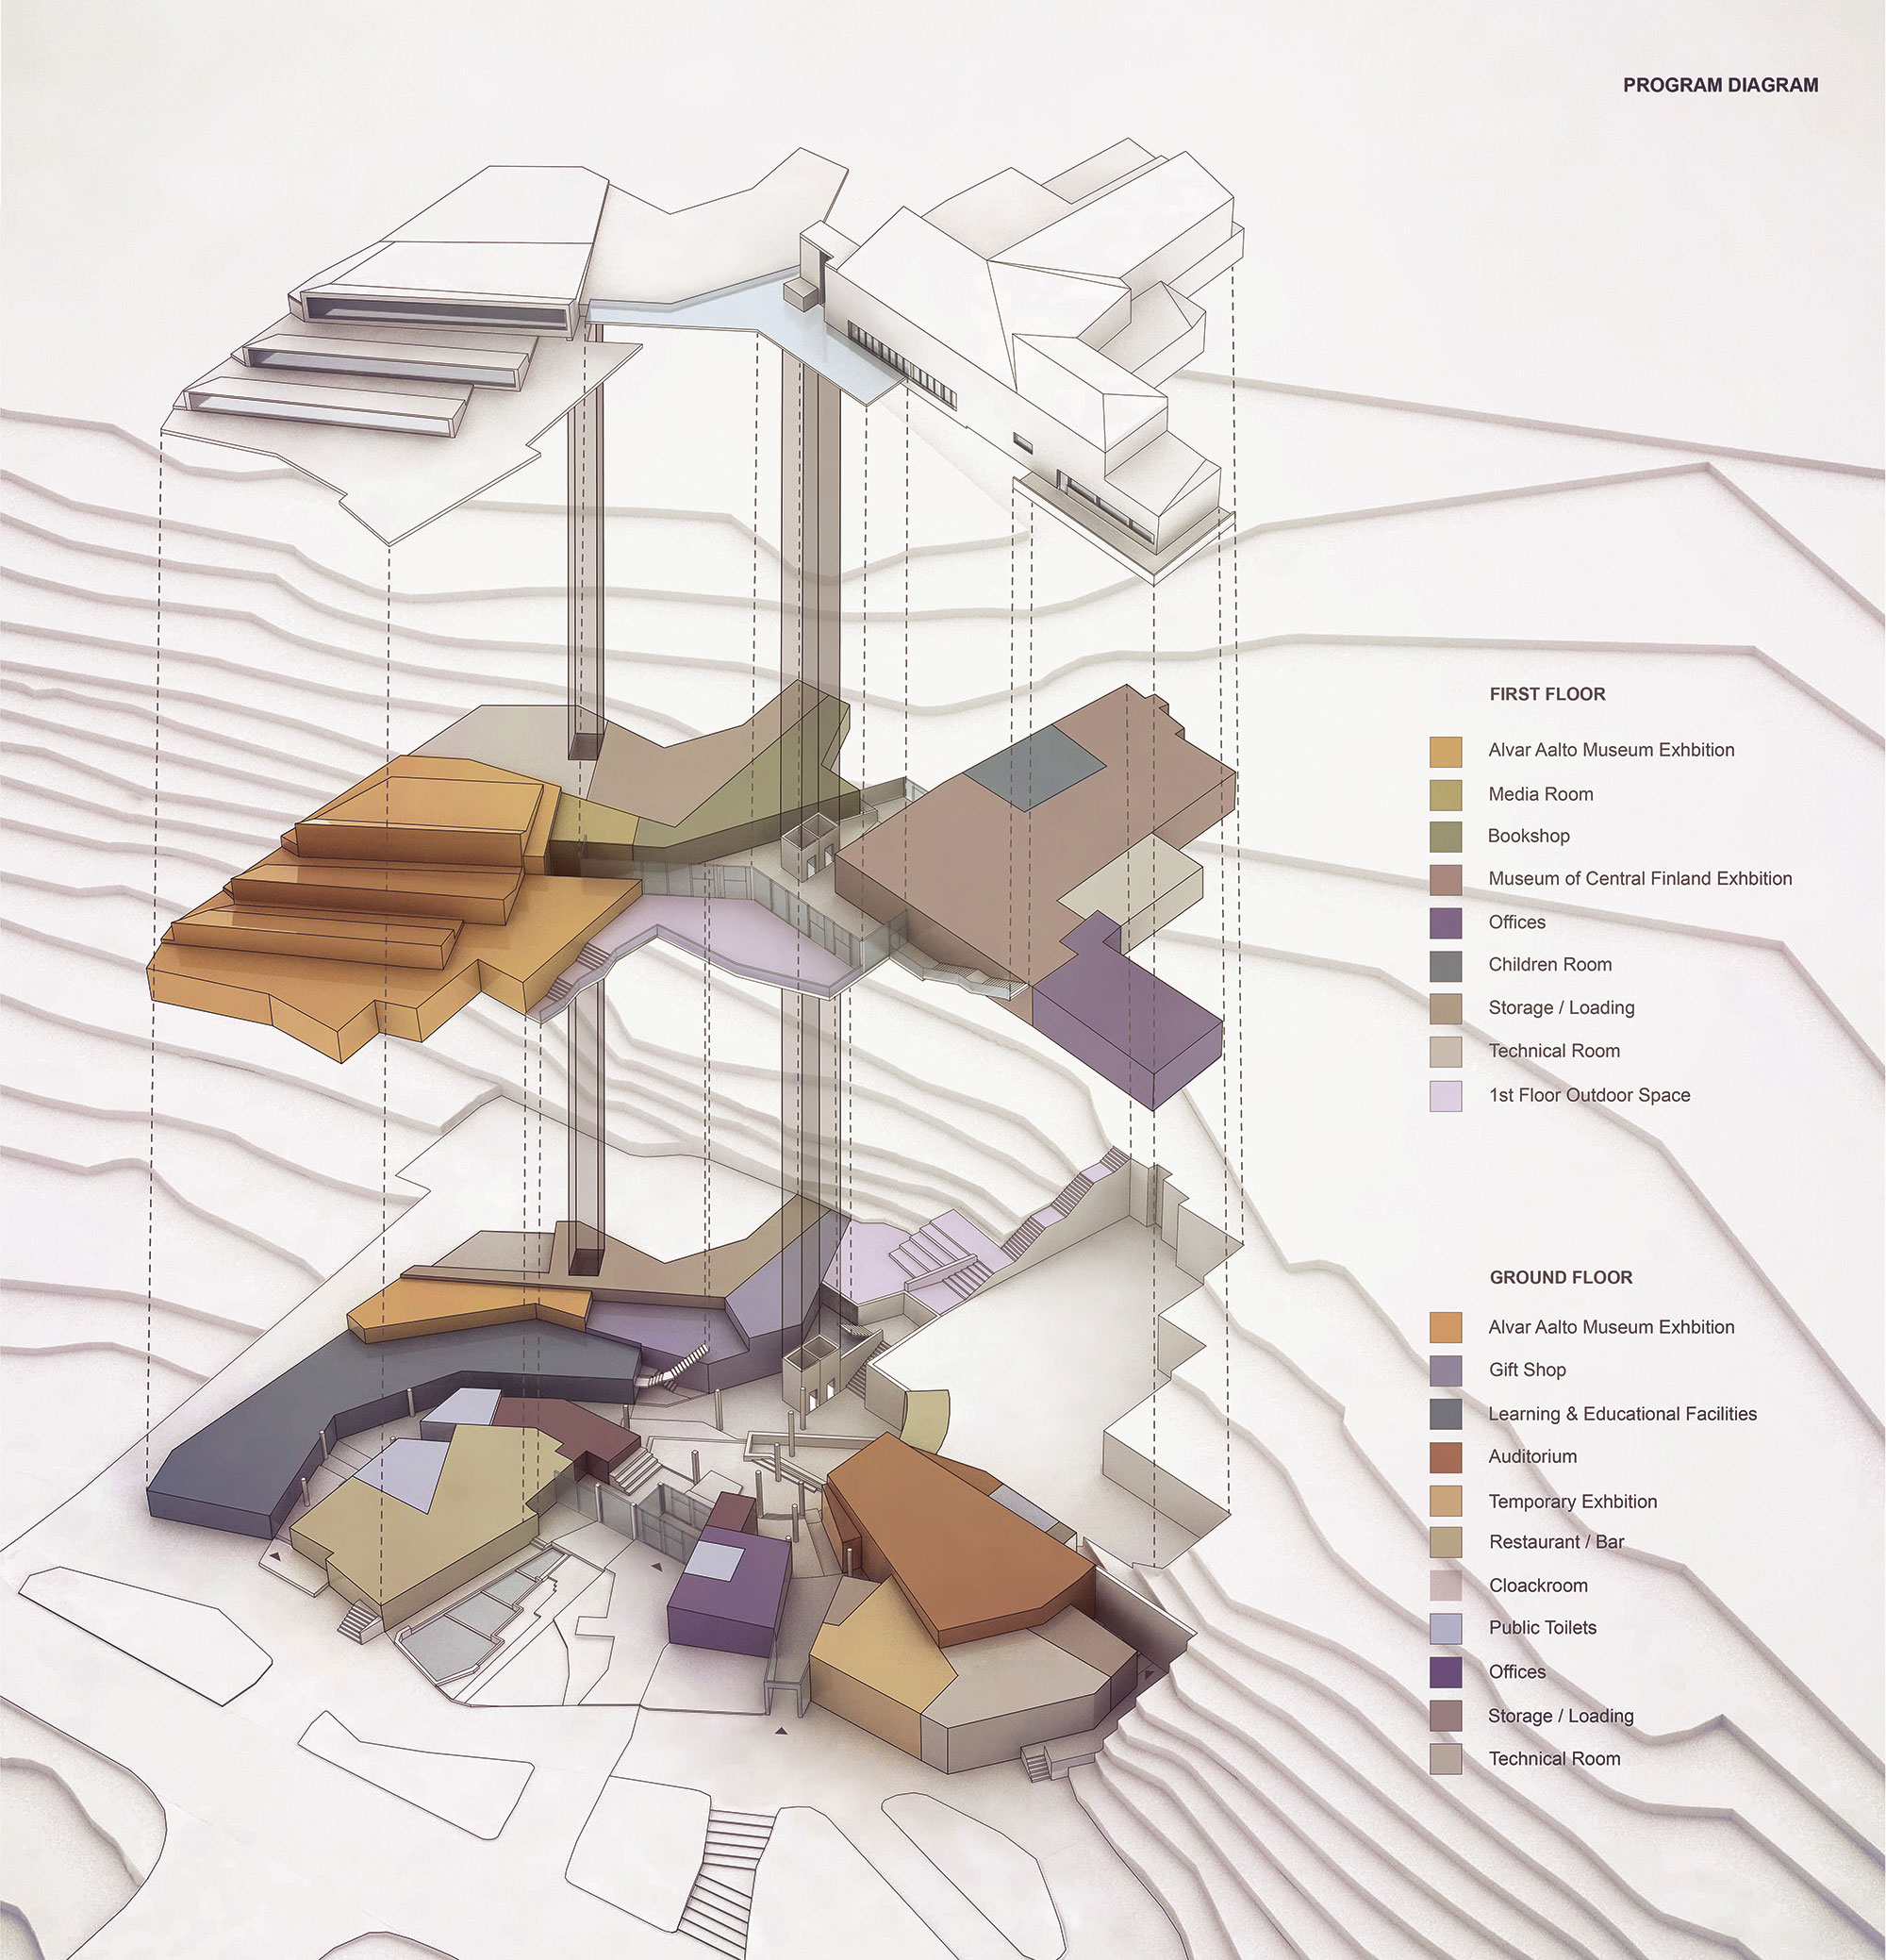 MCA-Alvar-Aalto-Time-lapse-program-diagram.jpg